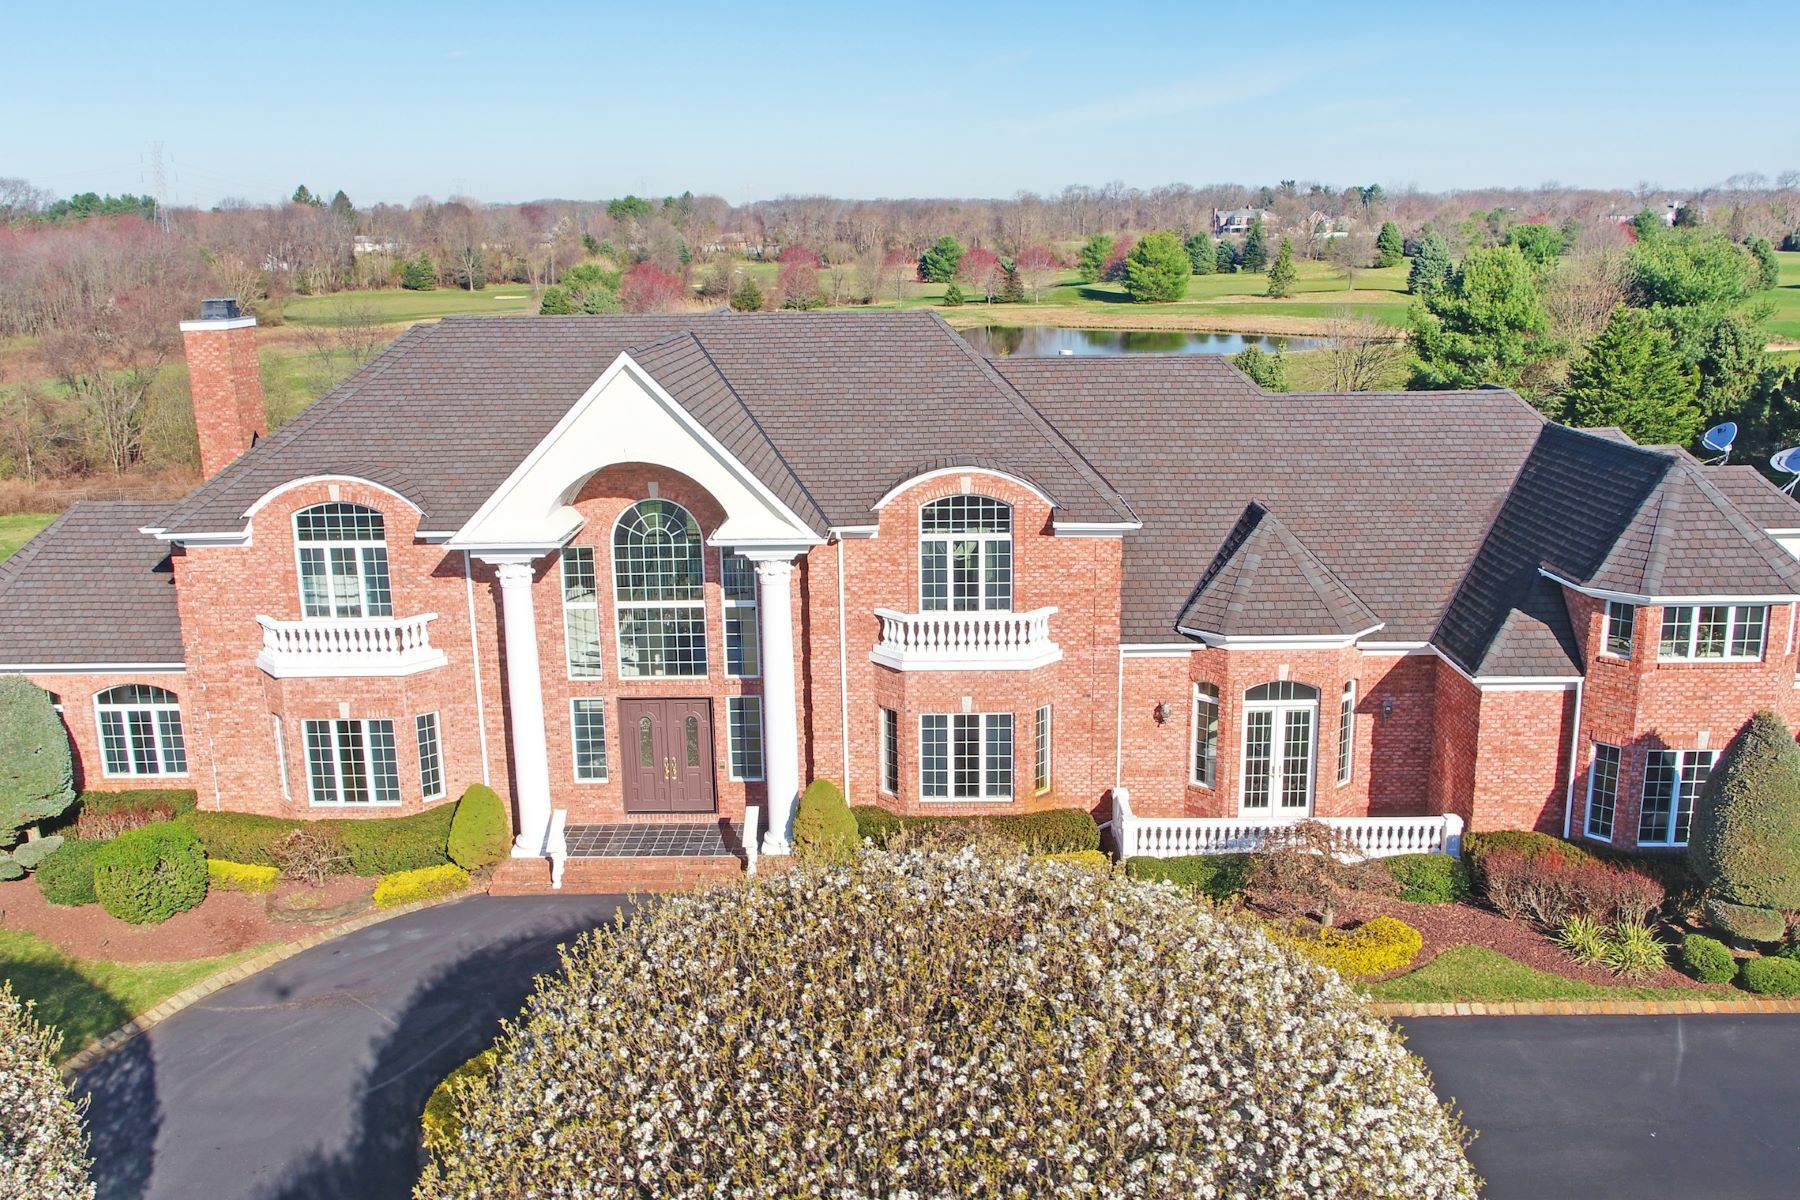 Single Family Homes for Sale at Spohisticated Elegance On Private Setting 20 Country Club Lane Colts Neck, New Jersey 07722 United States